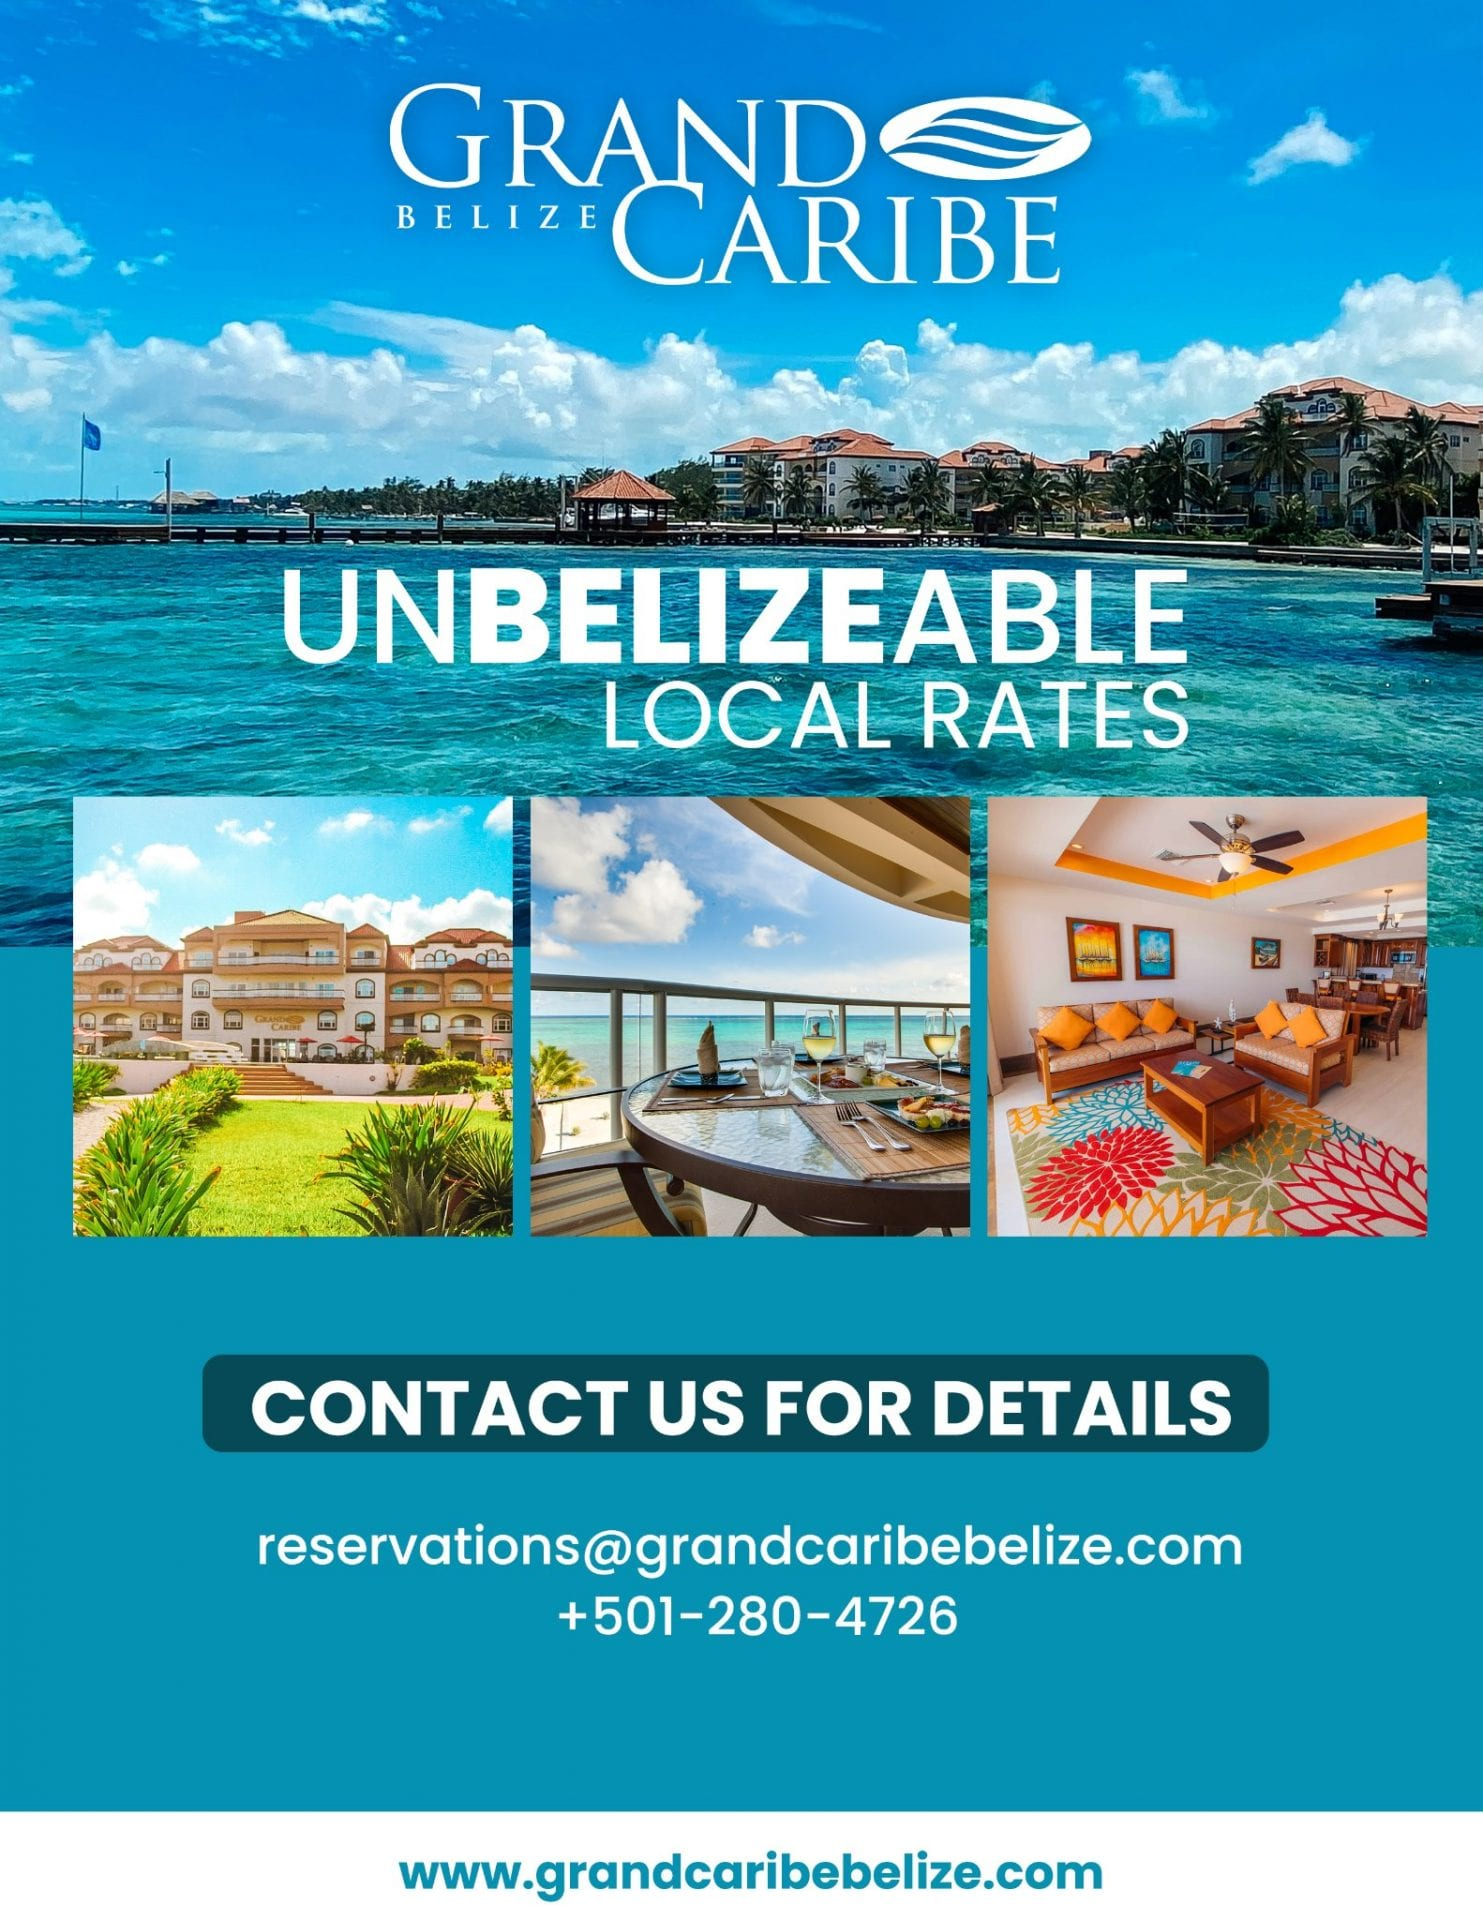 staycation special january 2021 grand caribe belize